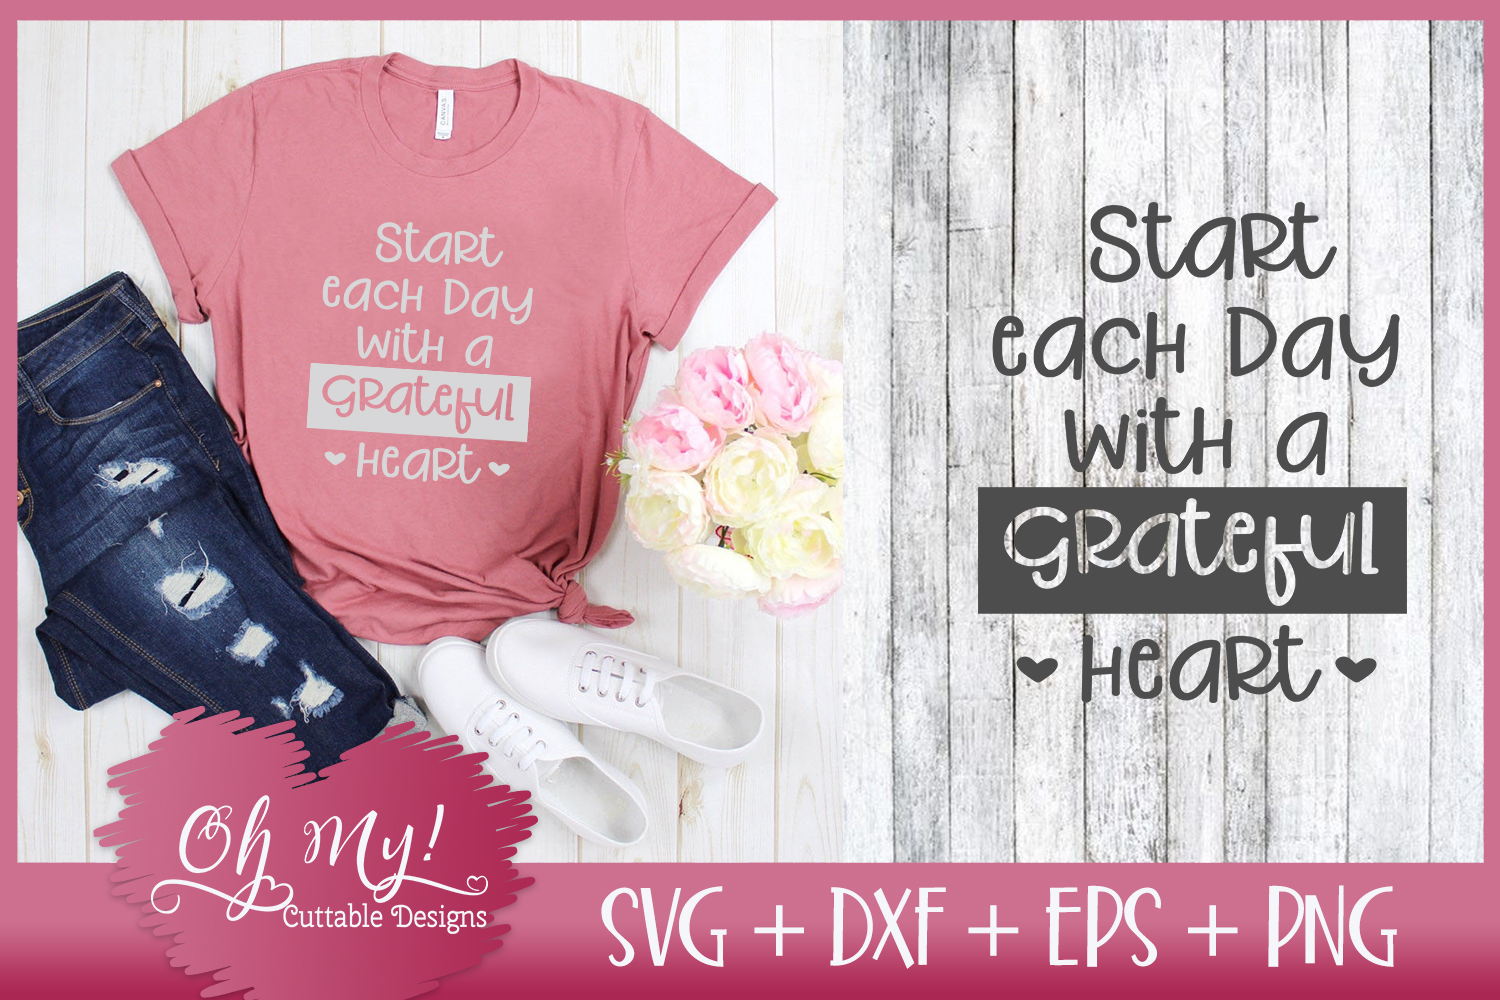 Start Each Day With A Grateful Heart - SVG DXF EPS PNG C example image 1